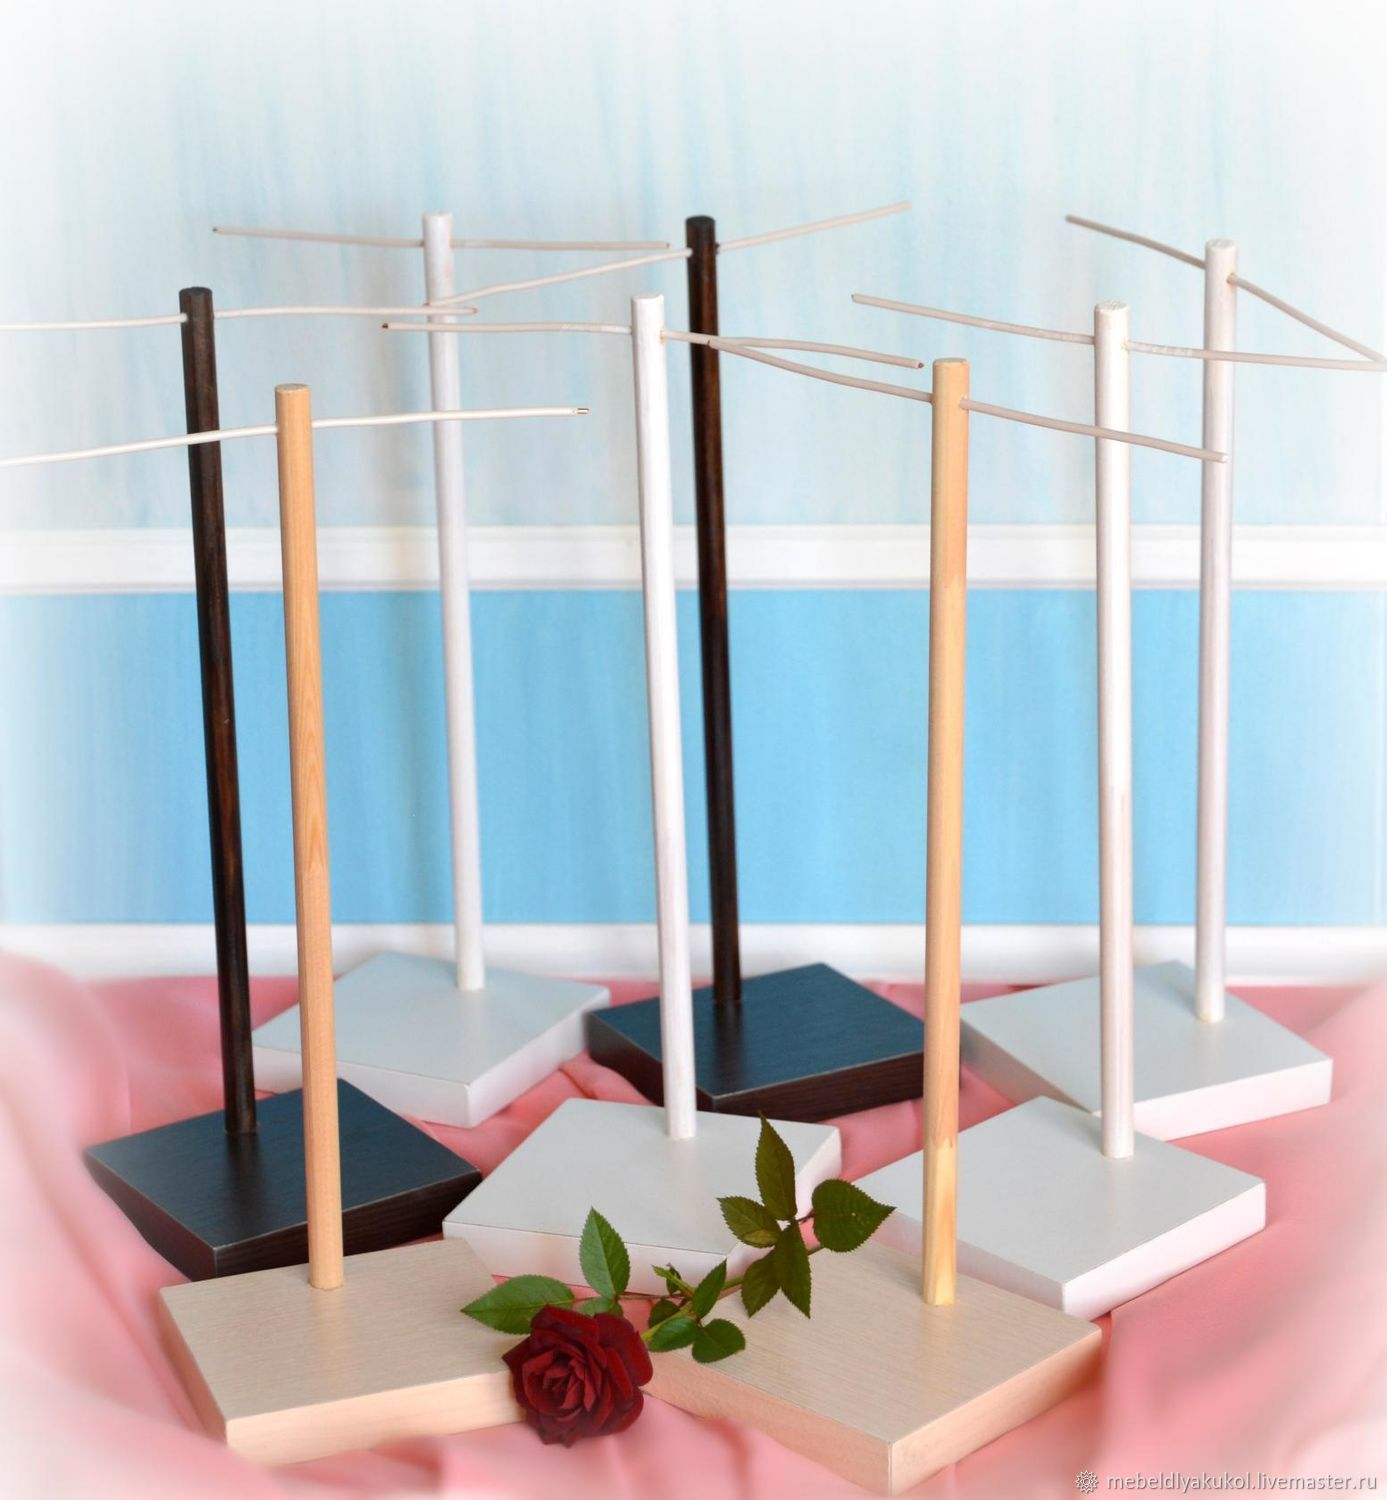 Doll stands with a square base made of chipboard, Stable and comfortable, 9,10,12,15 cm. color: natural, white, dark wenge